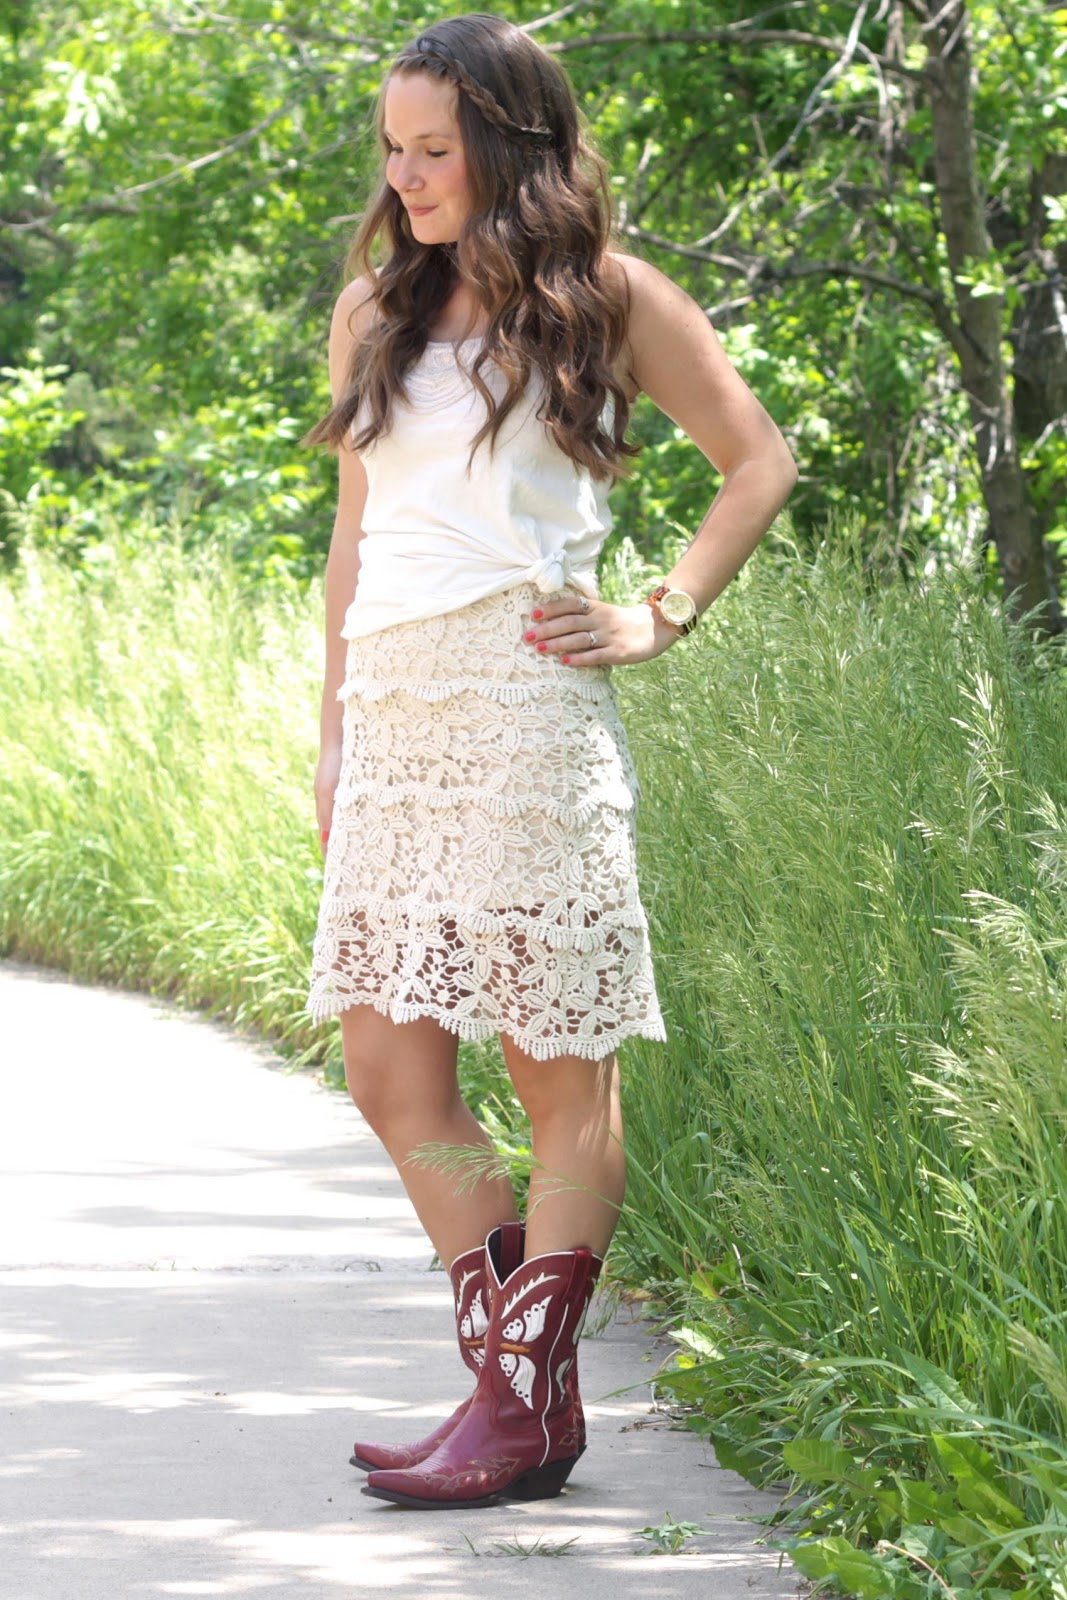 Skirts With Cowboy Boots - Skirts